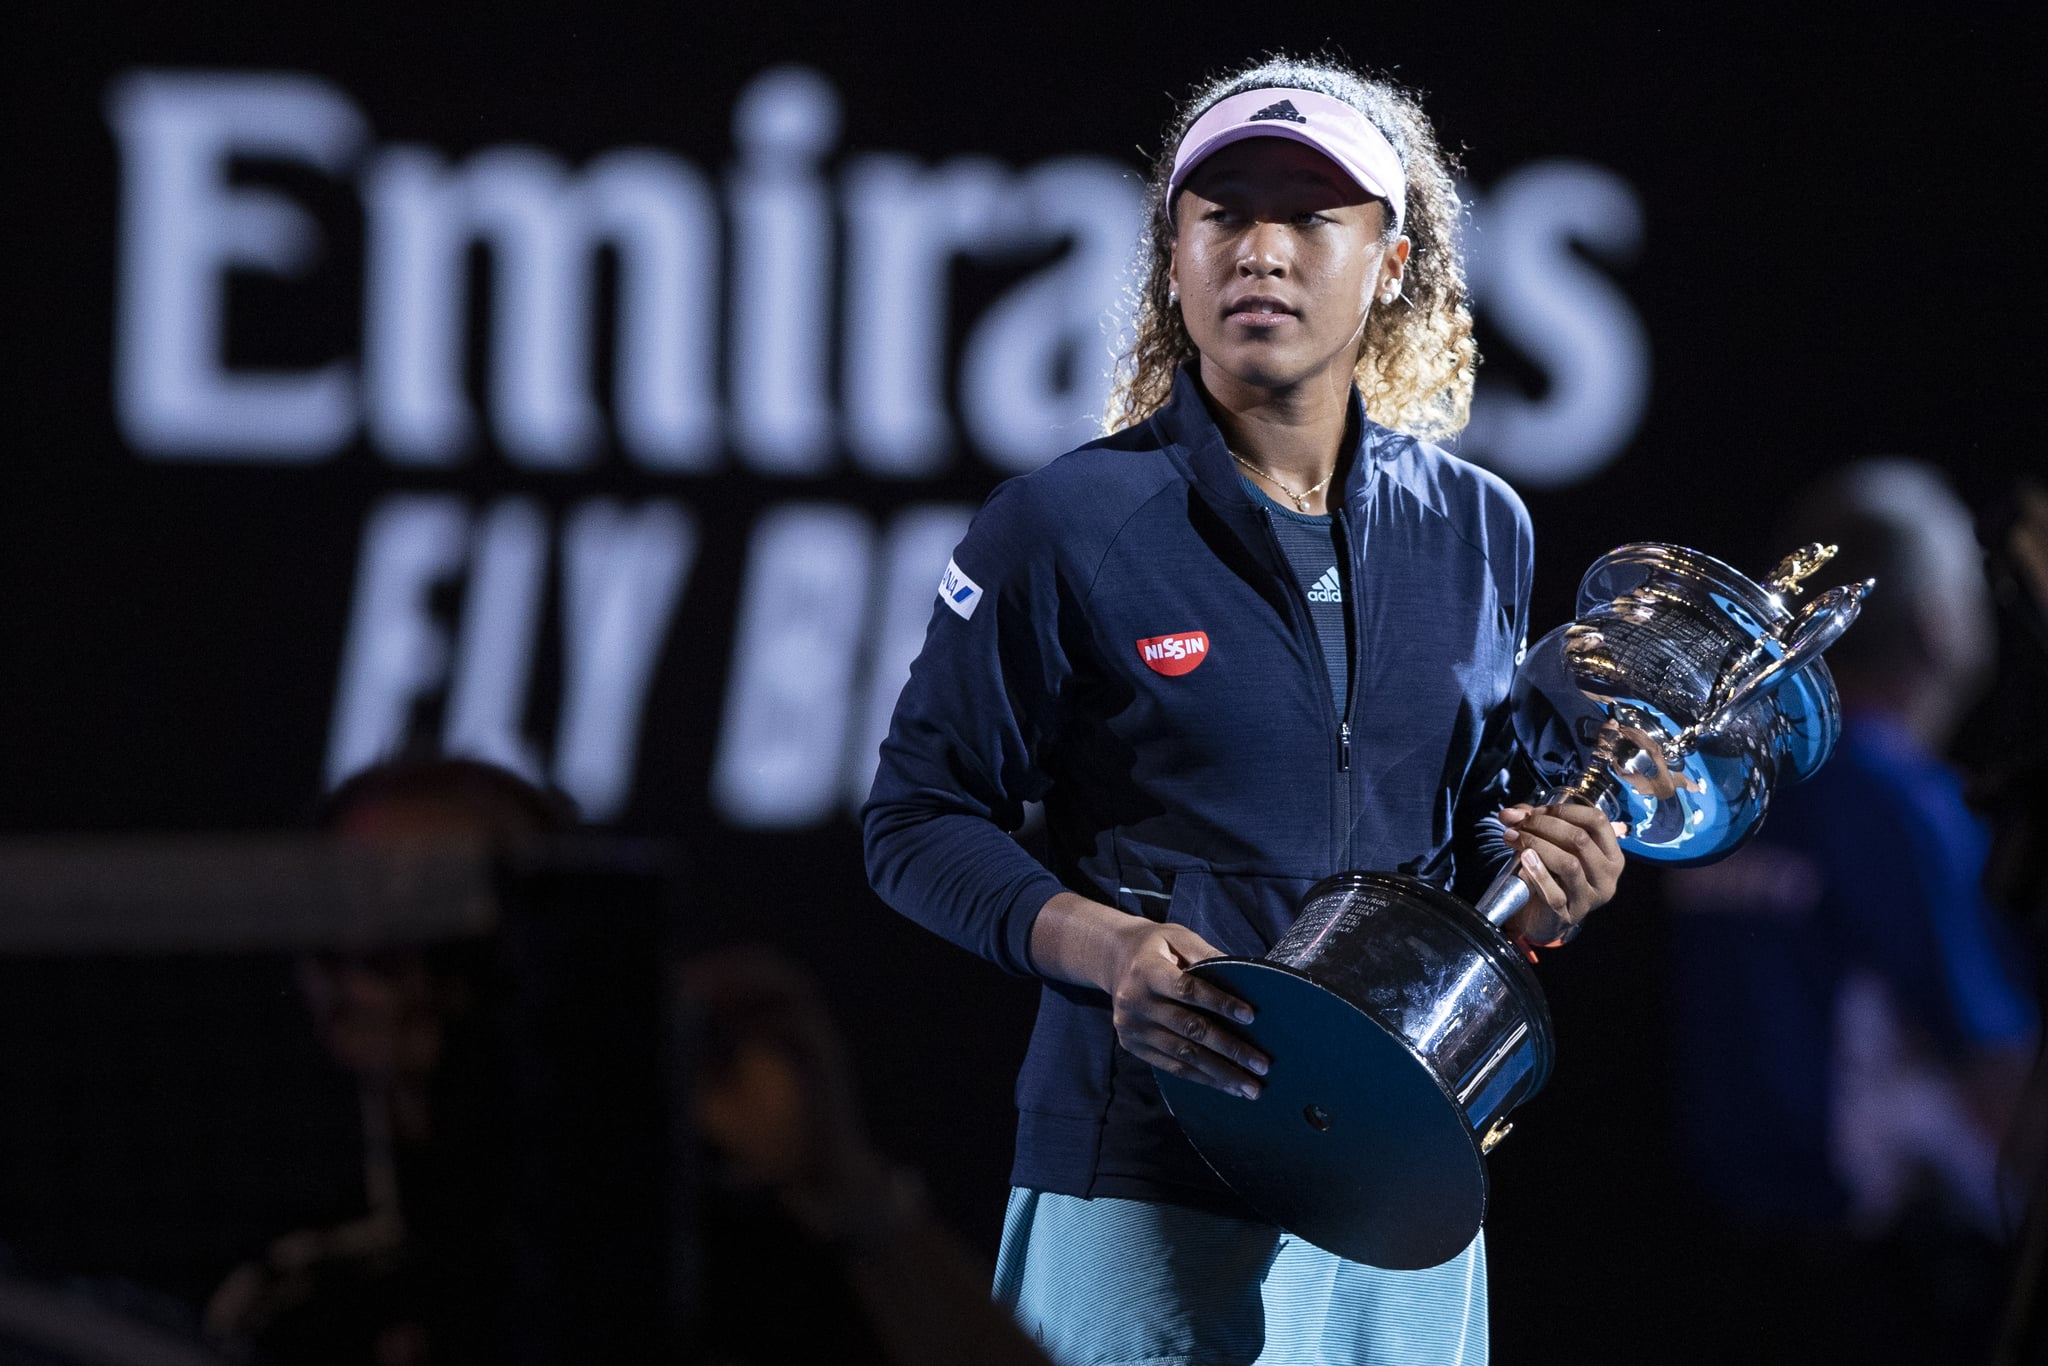 MELBOURNE, AUSTRALIA - JANUARY 26:  Naomi Osaka of Japan poses for a photo with the Daphne Akhurst Memorial Cup following victory in her Women's Singles Final match against Petra Kvitova of the Czech Republic during day 13 of the 2019 Australian Open at Melbourne Park on January 26, 2019 in Melbourne, Australia.(Photo by Fred Lee/Getty Images)